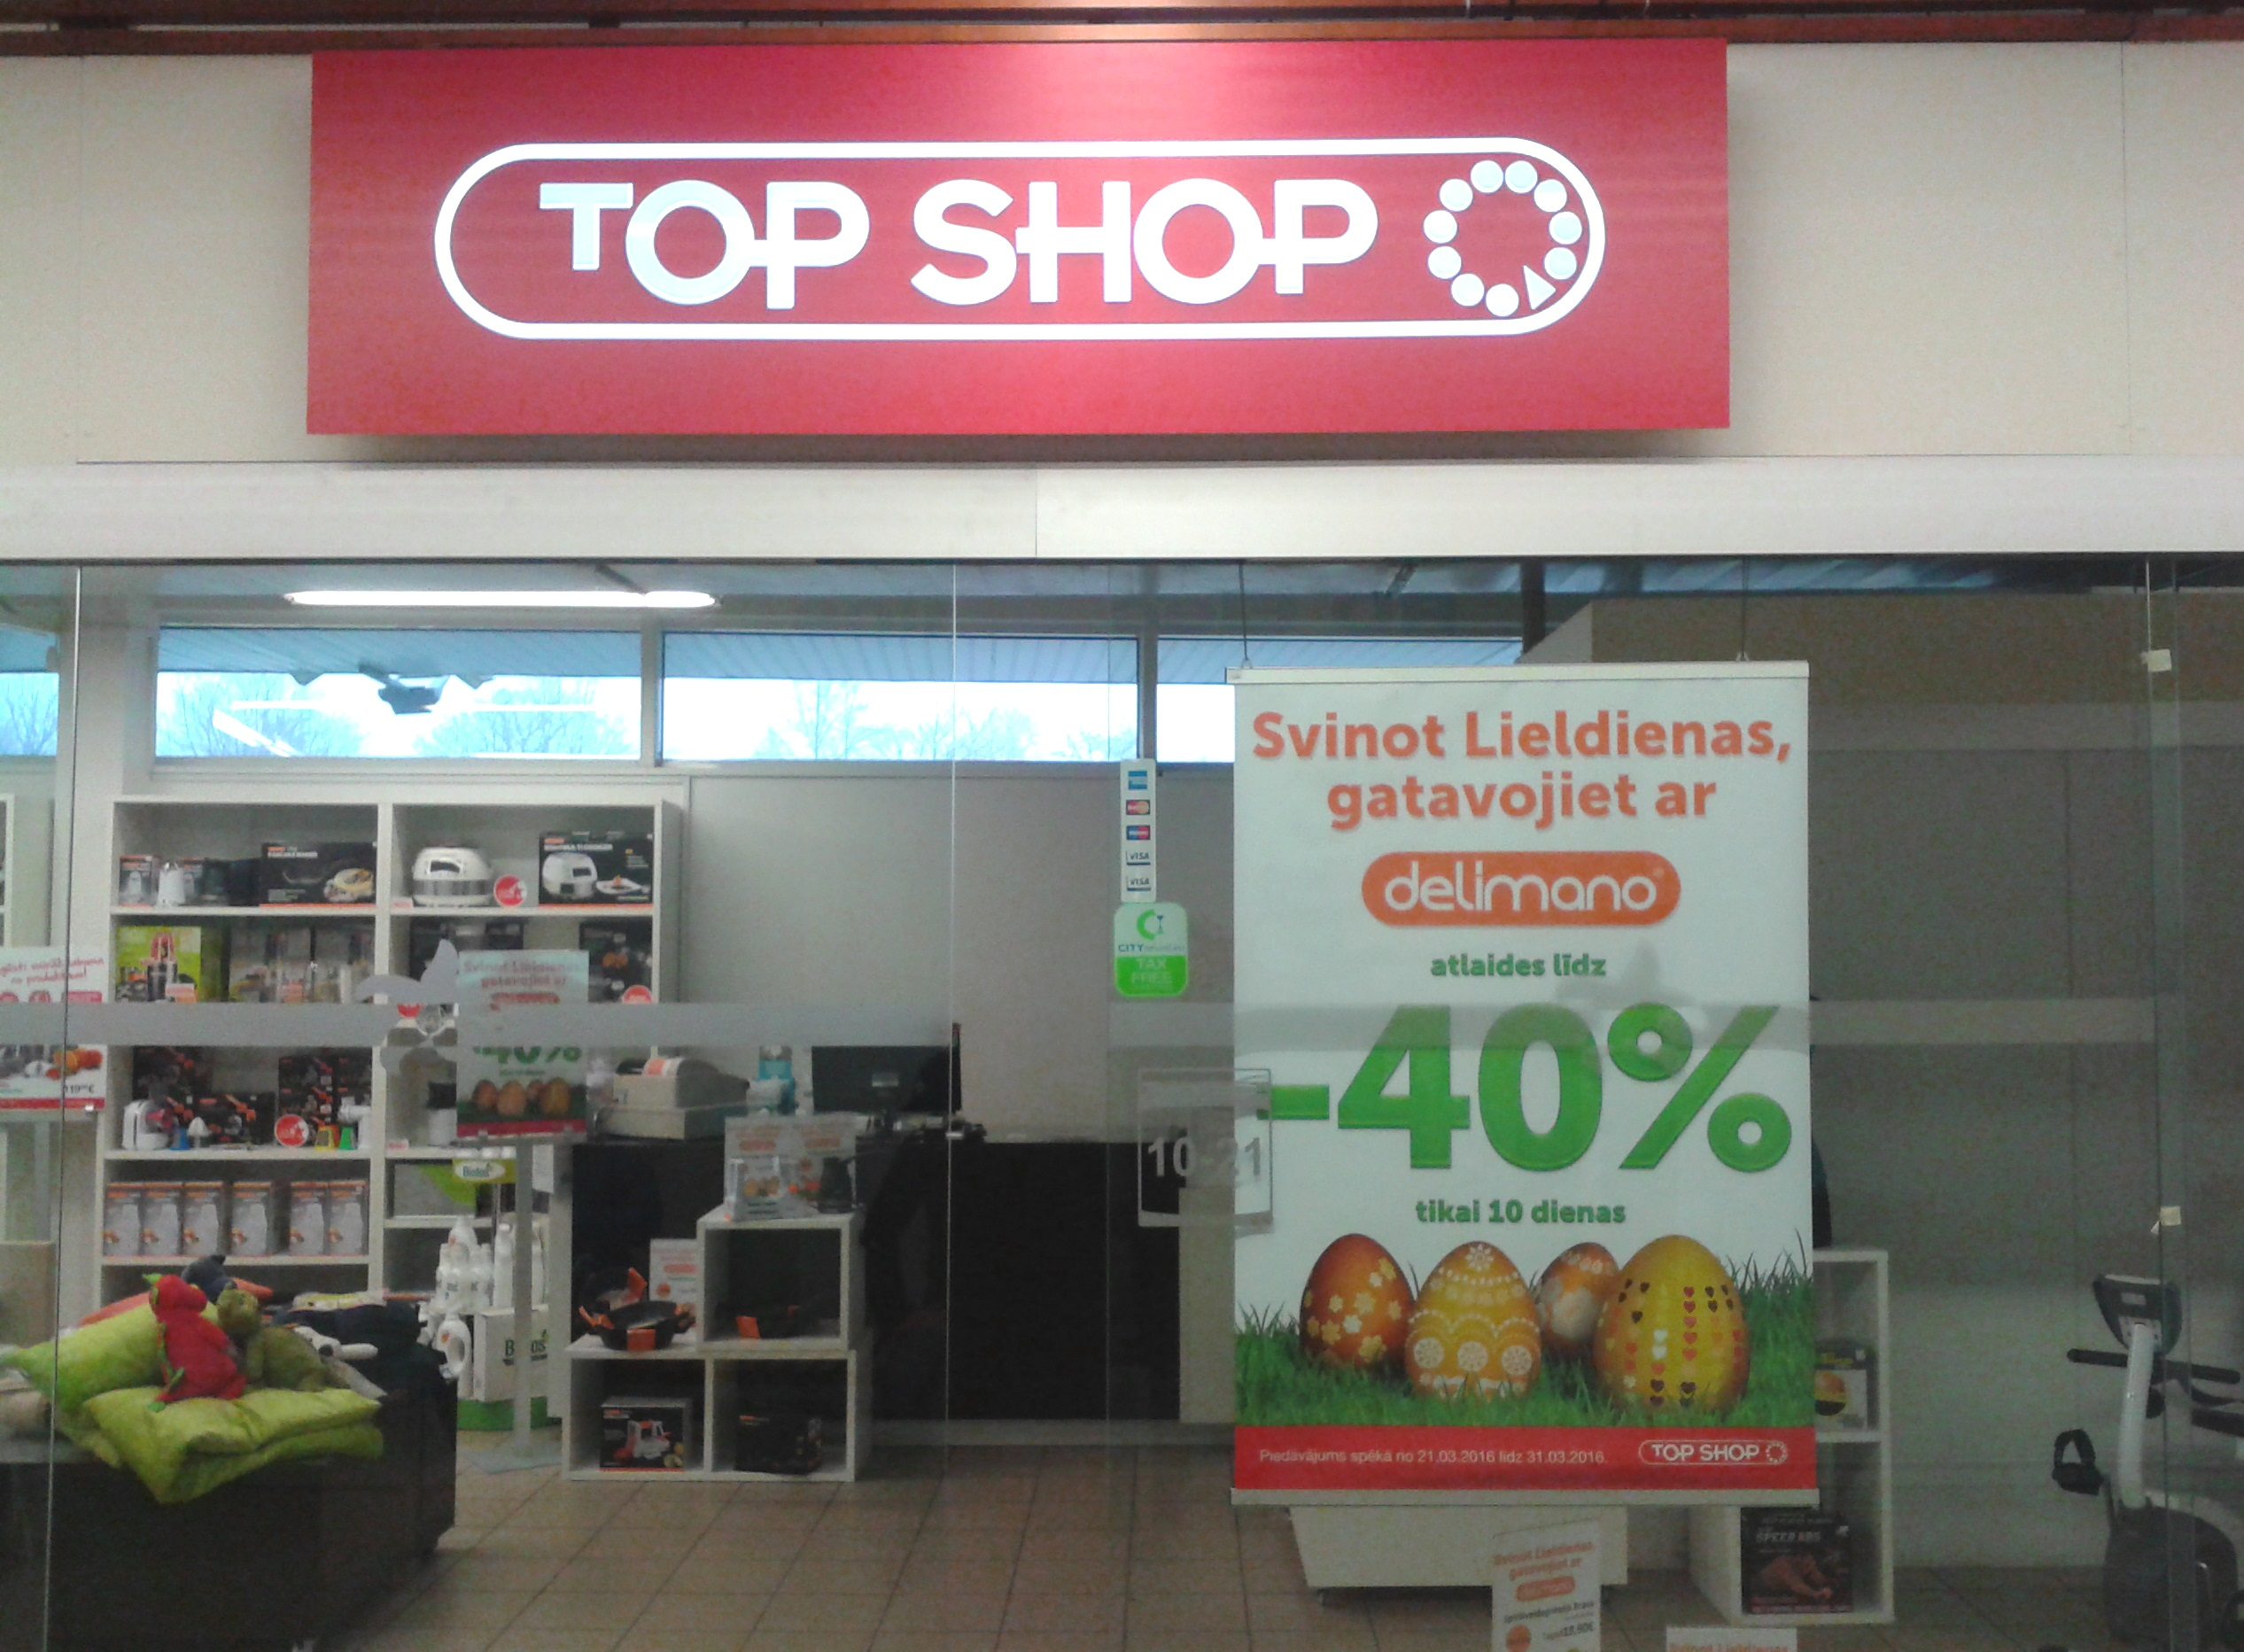 TOP SHOP (t/c Tobago)